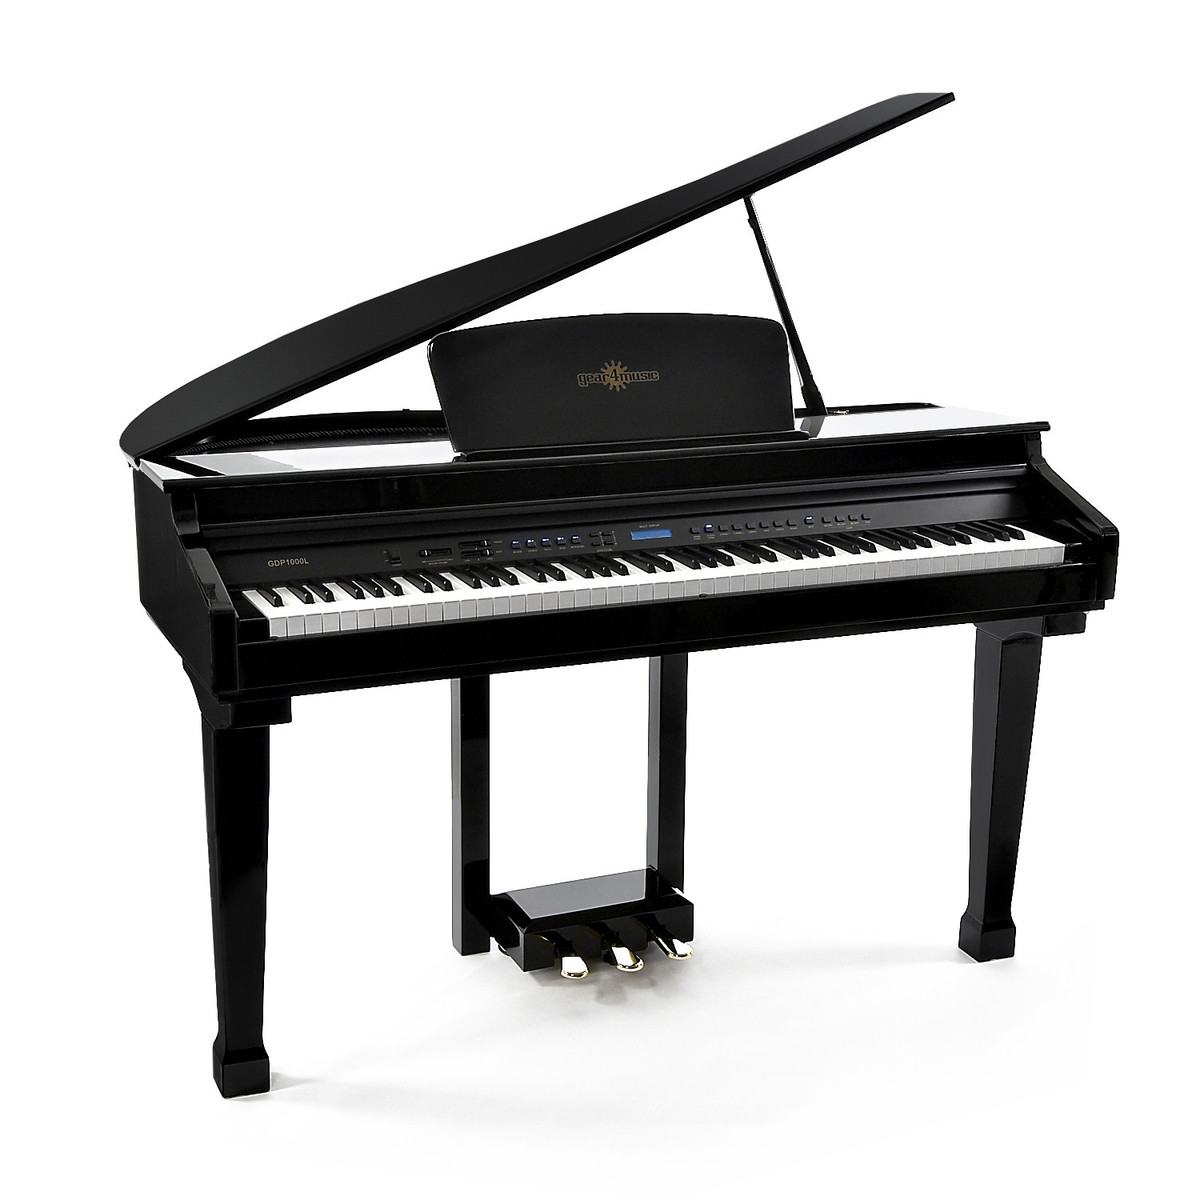 Gdp 100 digital grand piano by gear4music b stock at for Size of a baby grand piano